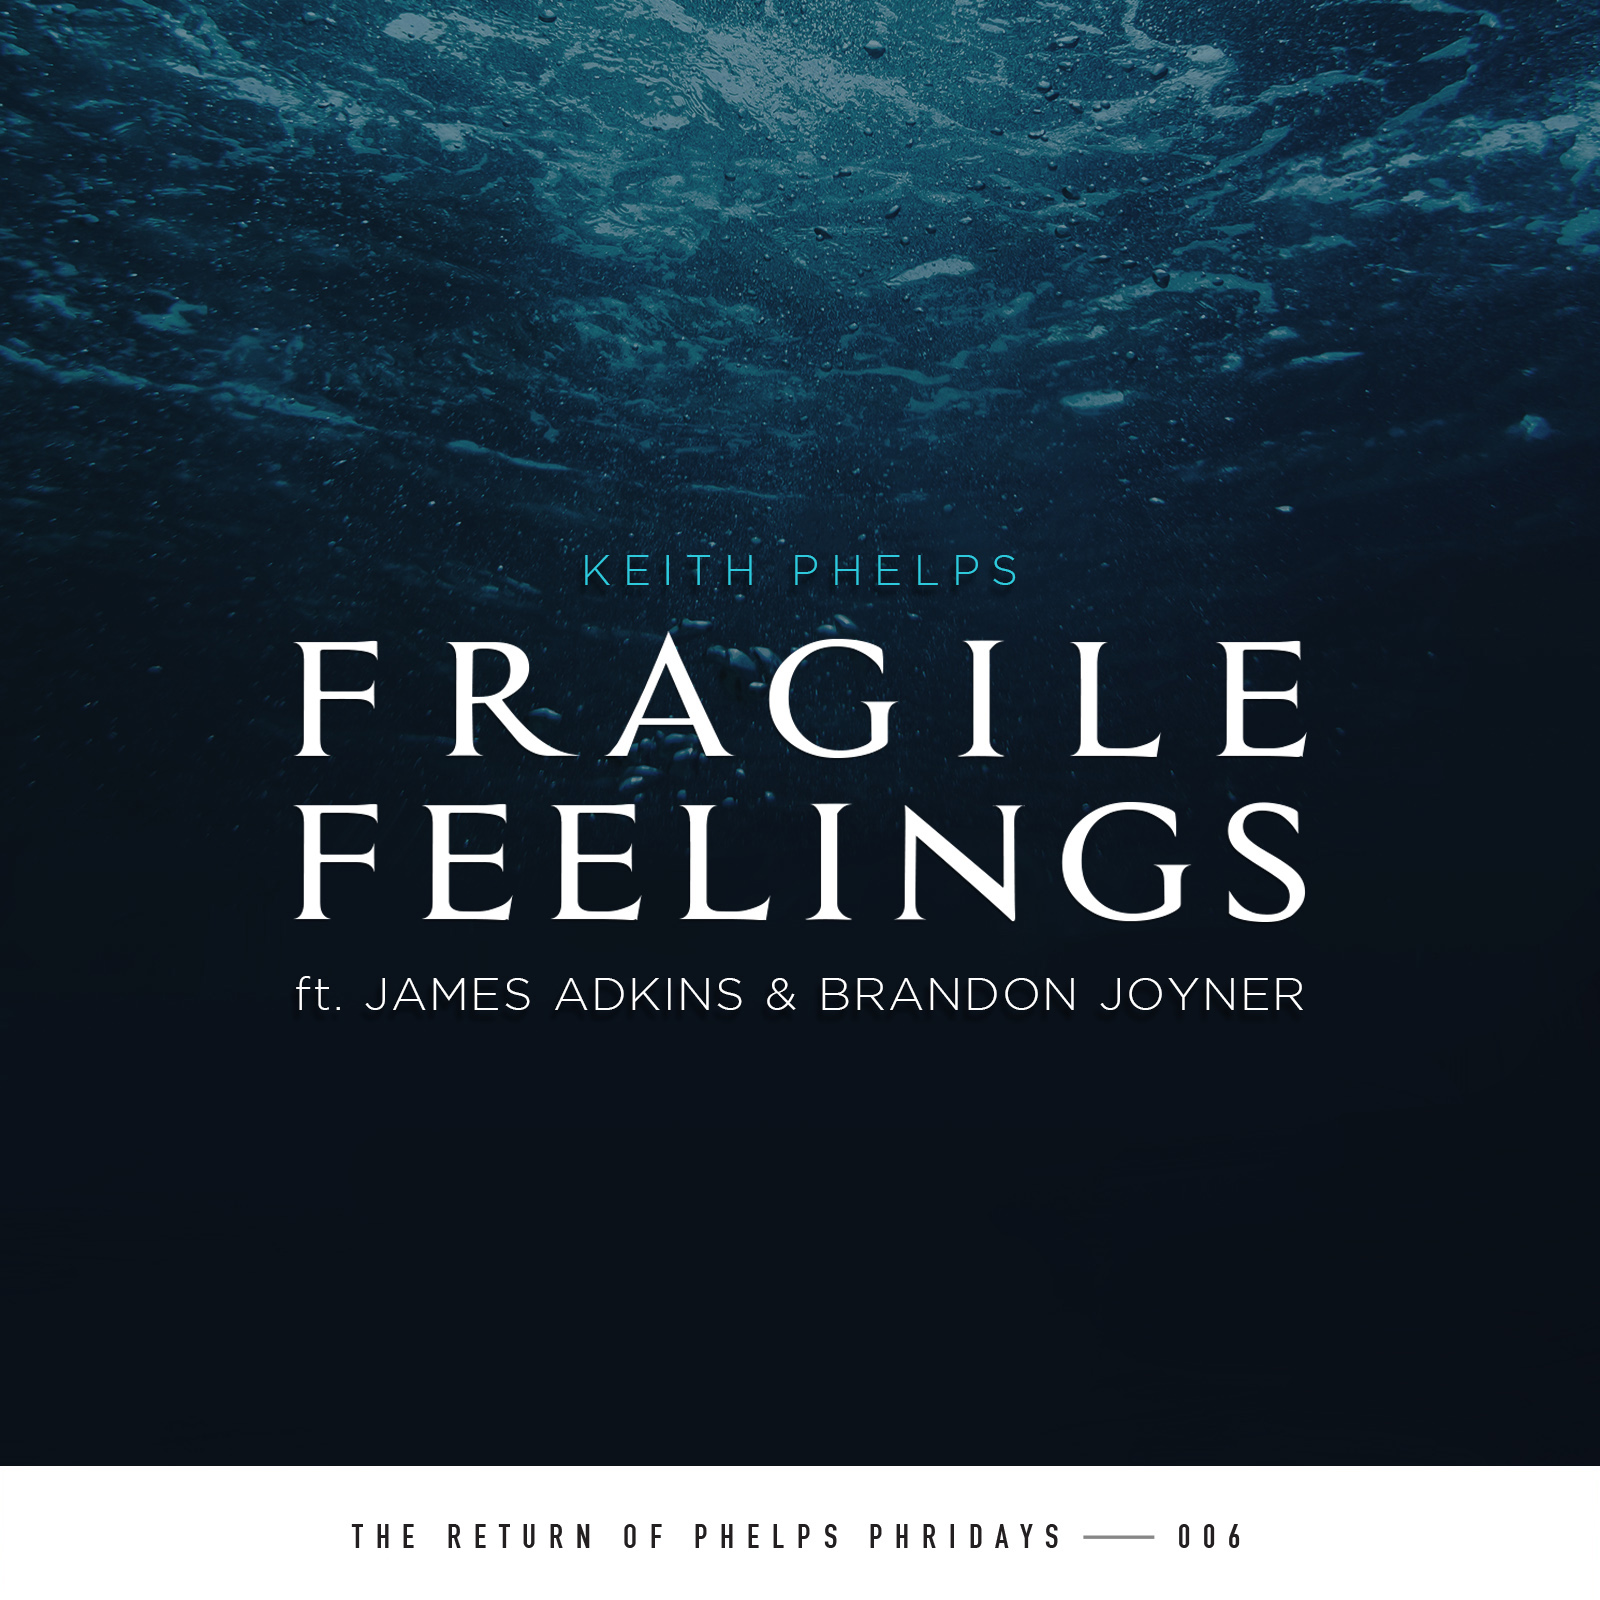 Keith Phelps - Fragile Feelings feat. James Adkins & Brandon Joyner (Single)